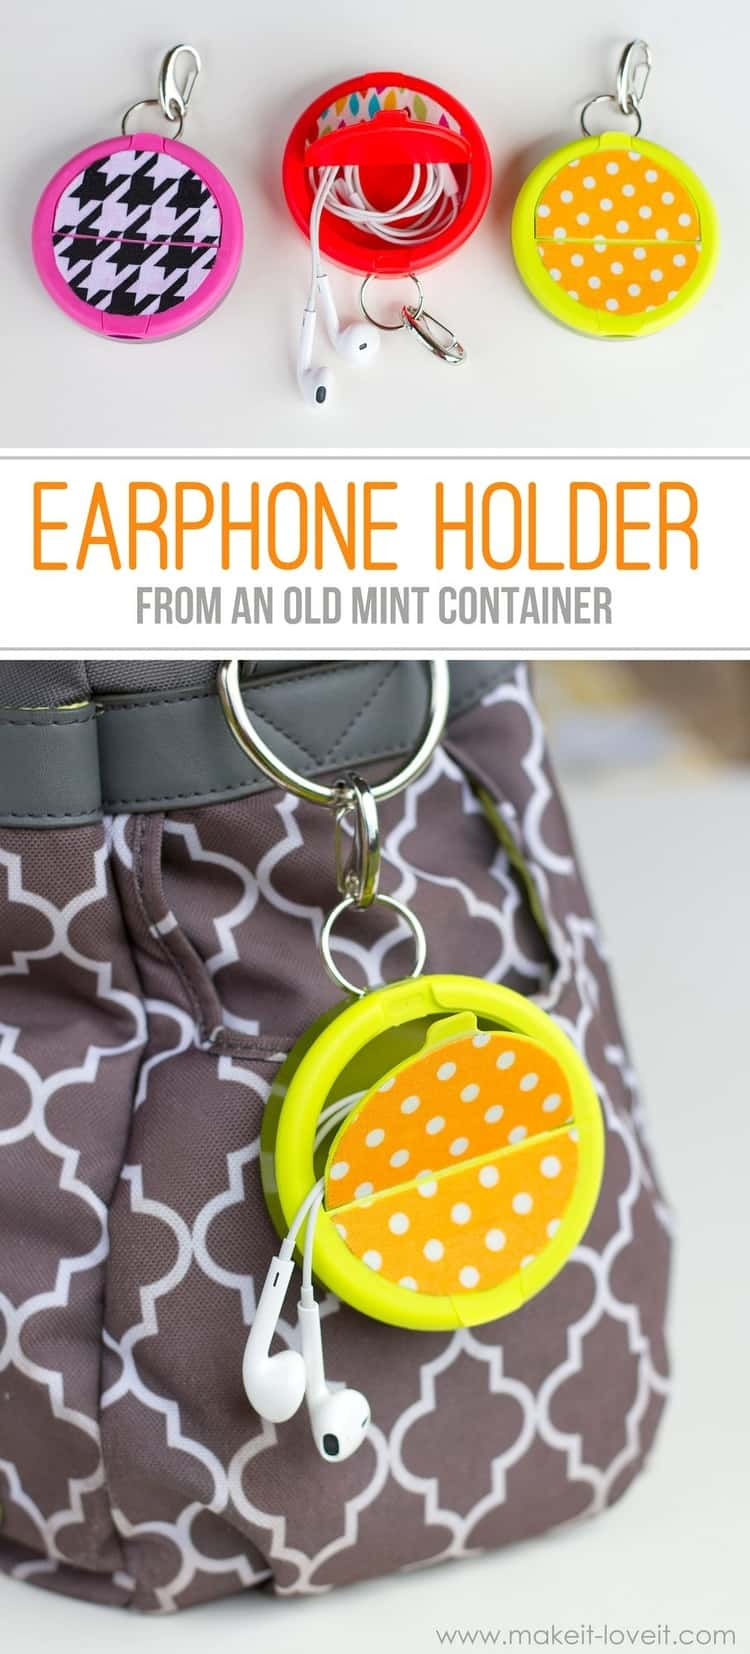 2-photo collage - 3 earphone holders from old mint containers in pink, orange, and yellow; EARPHONE HOLDER FROM AN OLD MINT CONTAINER; and other old yellow mint container earphone holder hanging from a bag ring.